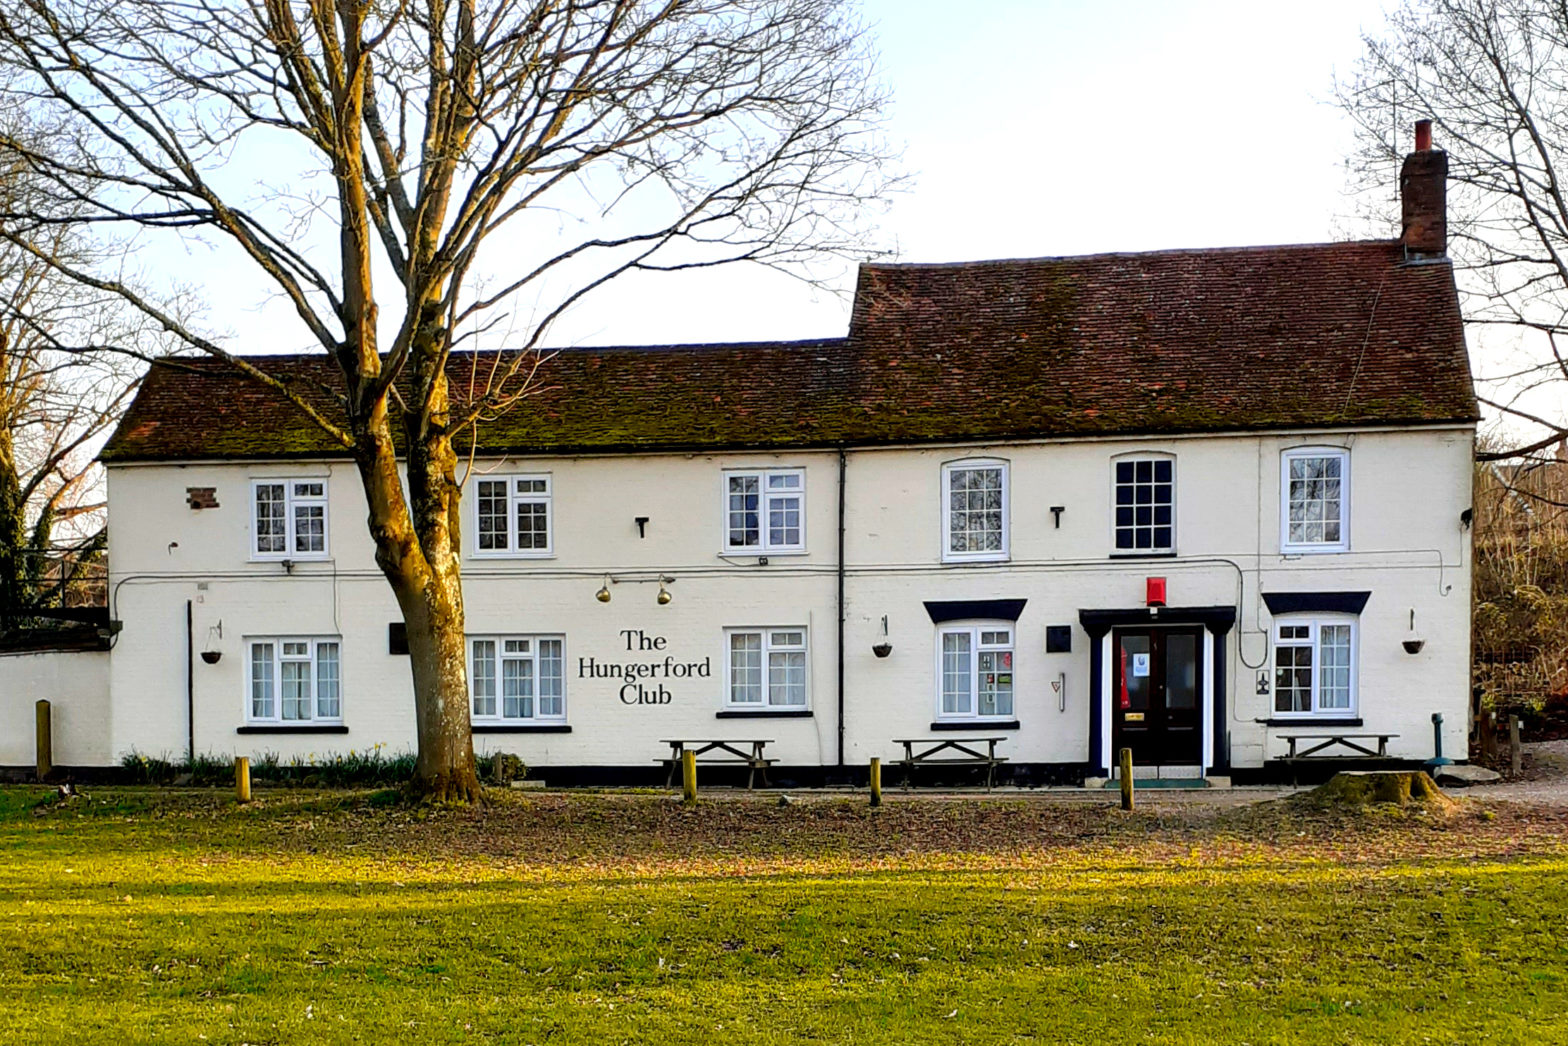 The Hungerford Club, The Croft, Hungerford